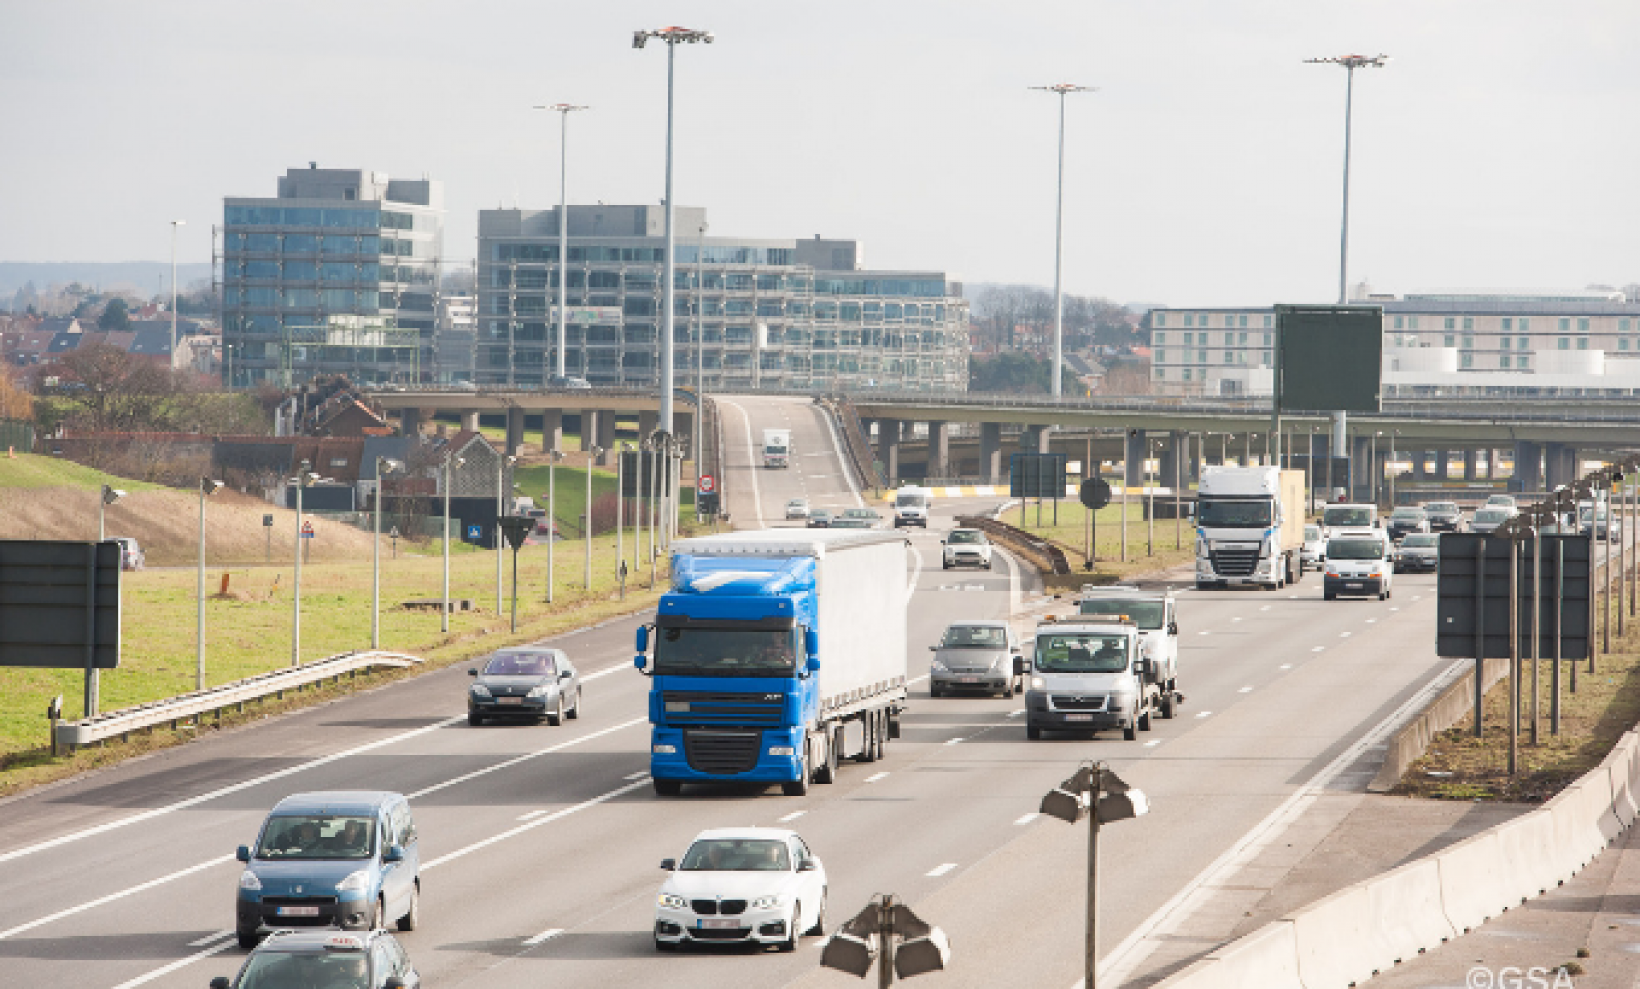 EGNOS and Galileo are already activated in the majority of GNSS-enabled on-board units for tolling of HGVs in Europe today.